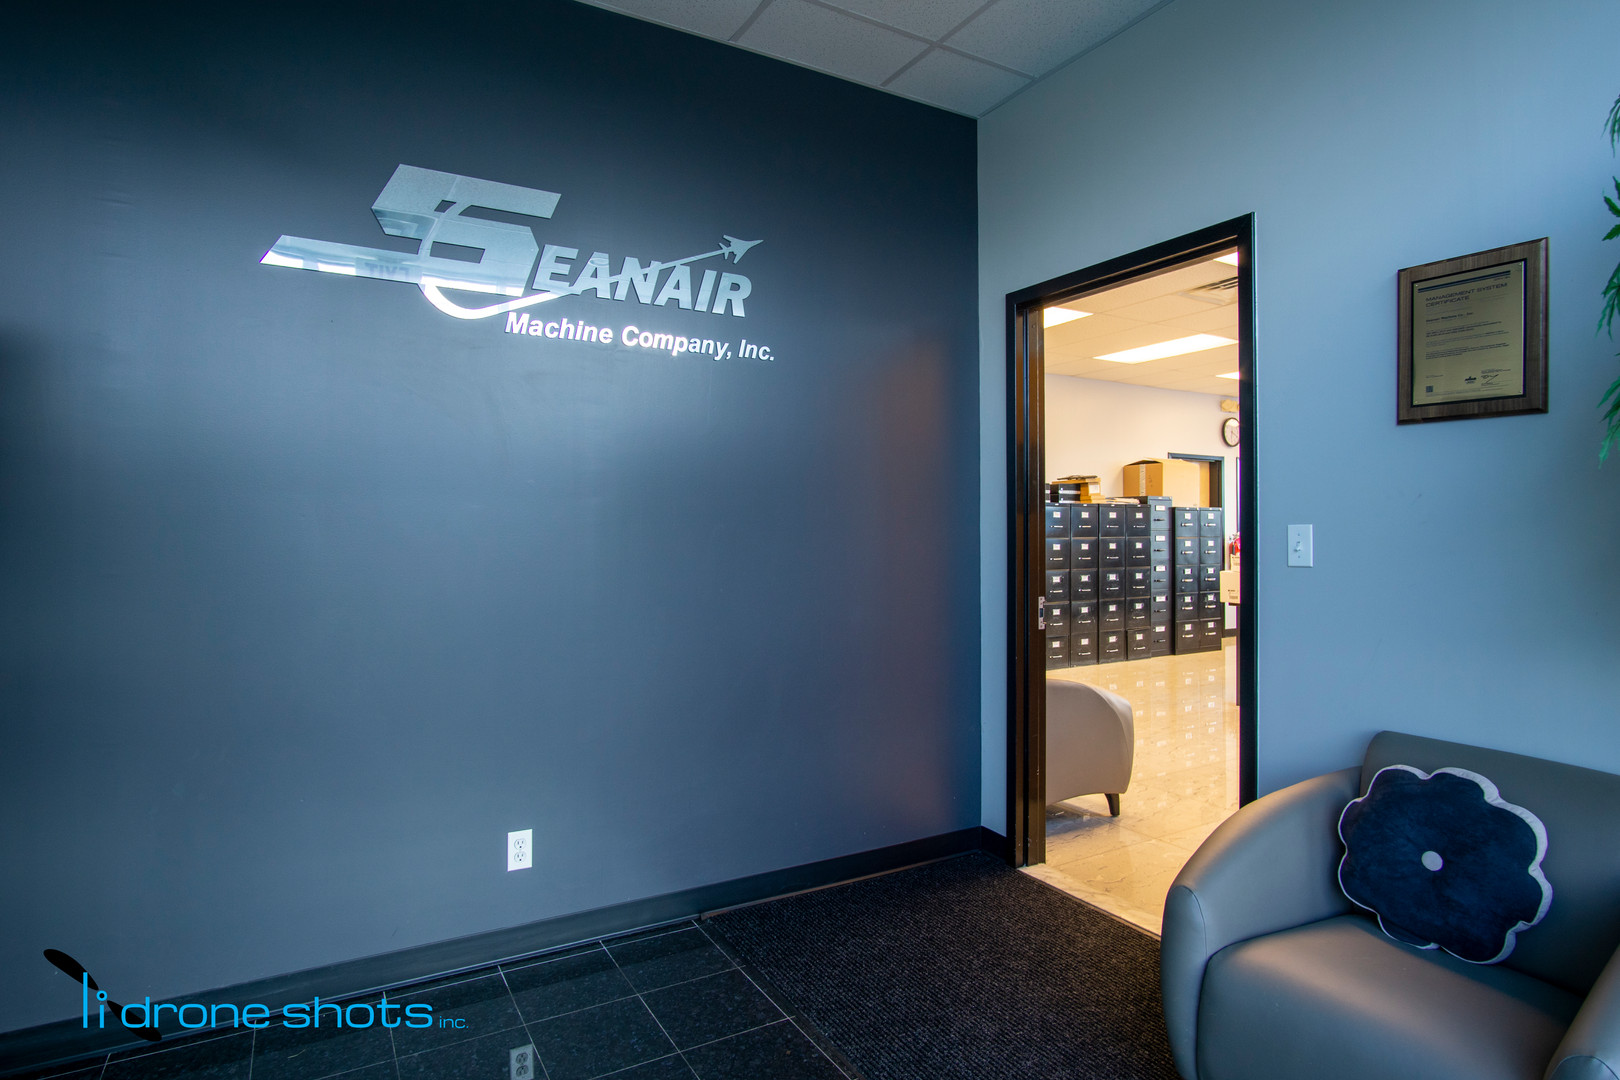 Seanair_Interior_Entrance_Watermark.jpg